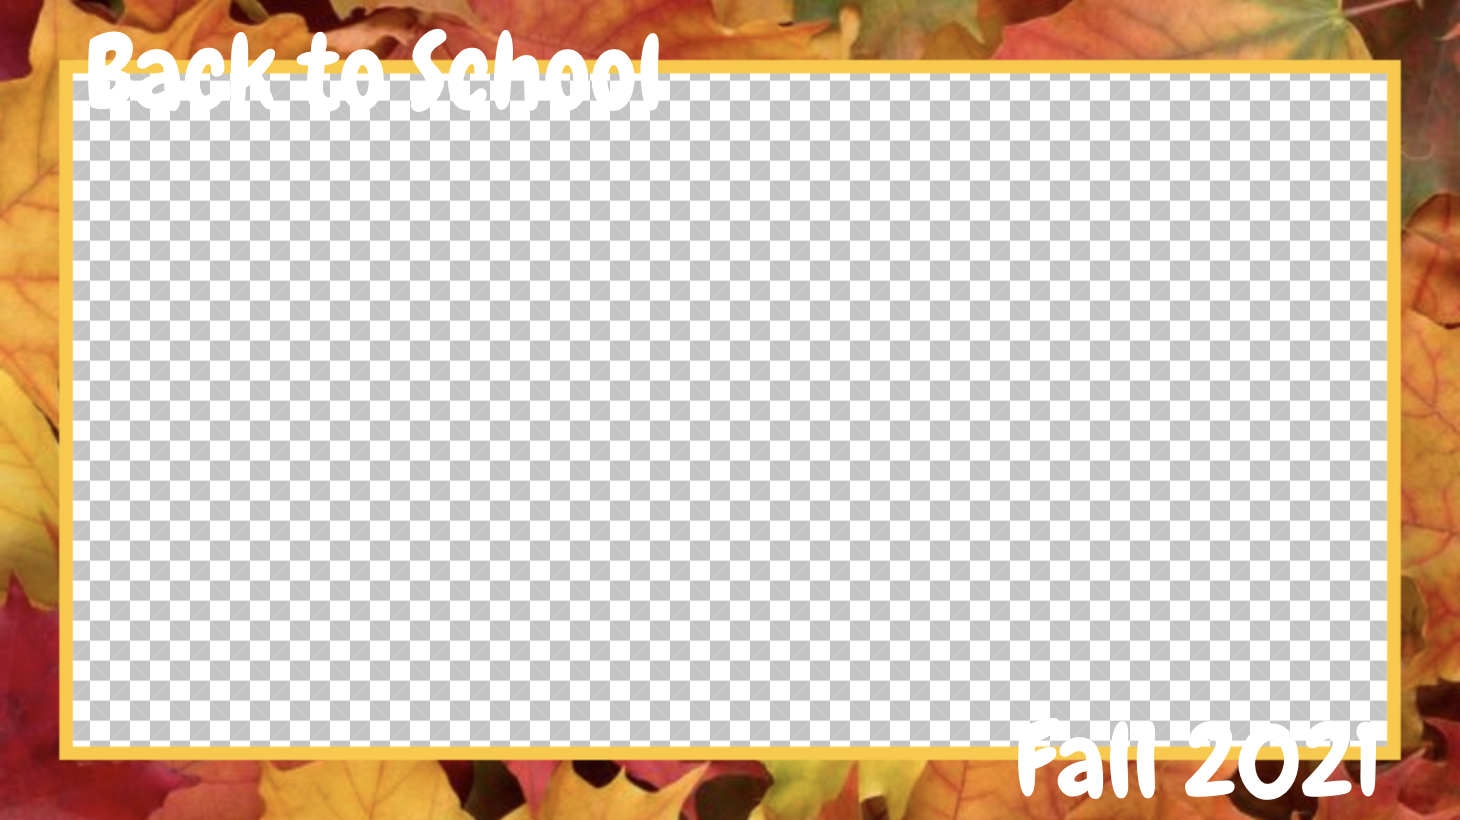 """A 16:9 photo frame featuring autumn leaves and displaying """"Back to School Fall 2021."""""""